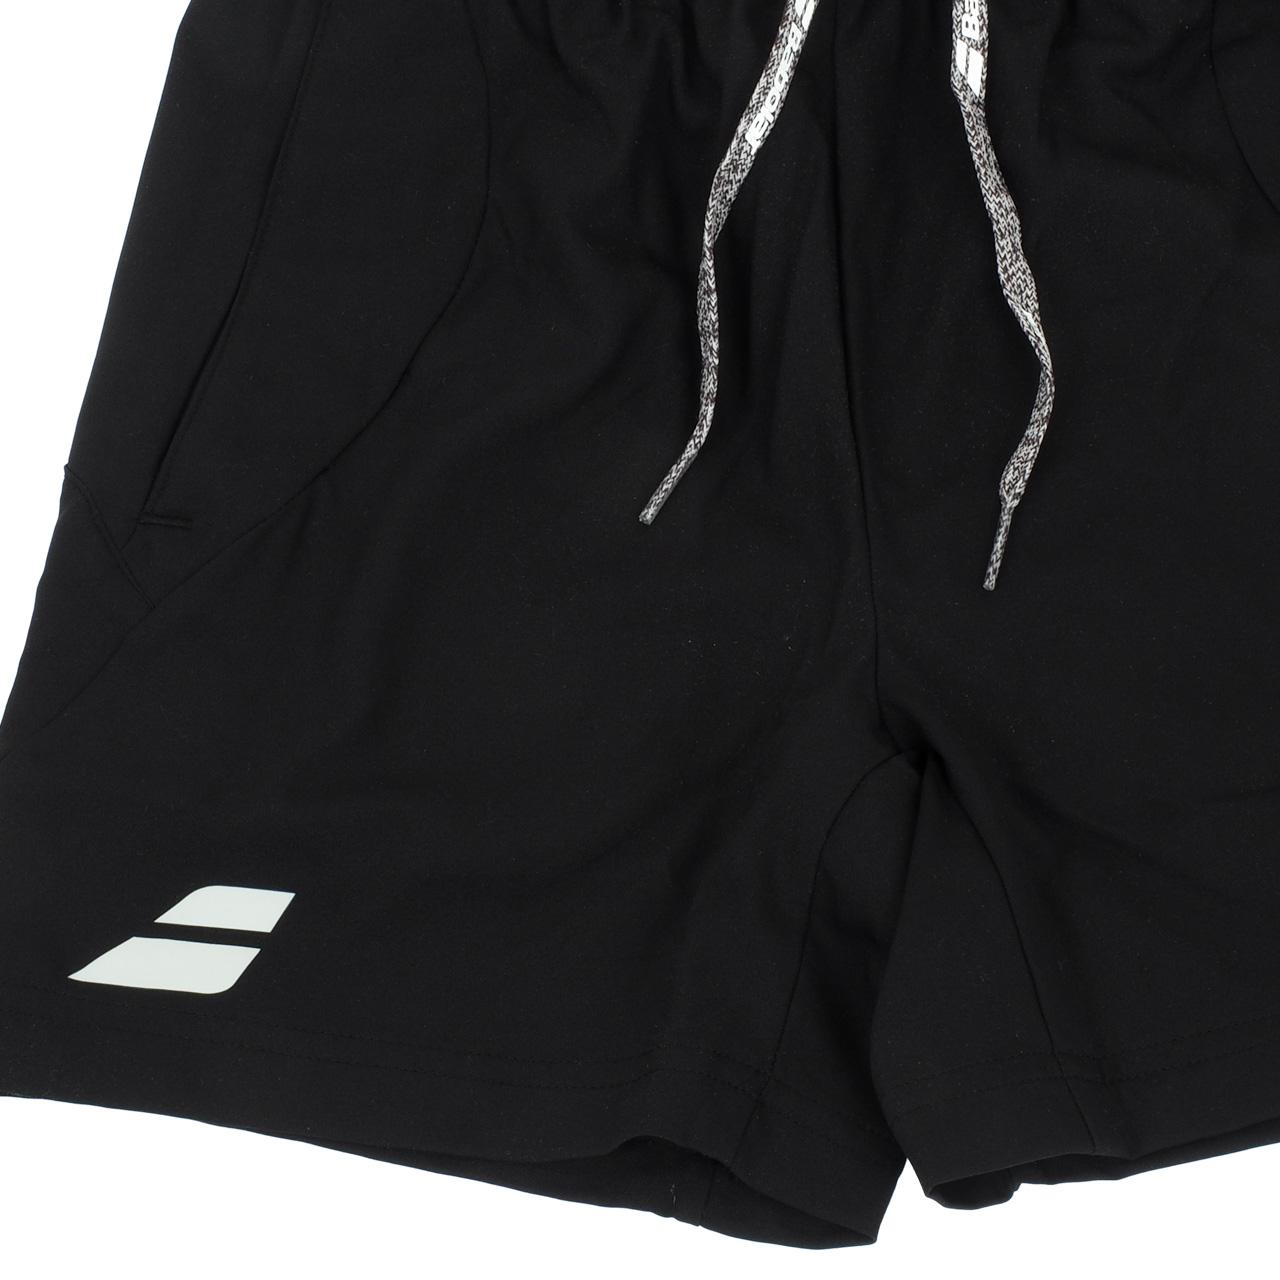 Short-de-tennis-Babolat-Short-core-black-kid-Blanc-70503-Neuf miniature 3